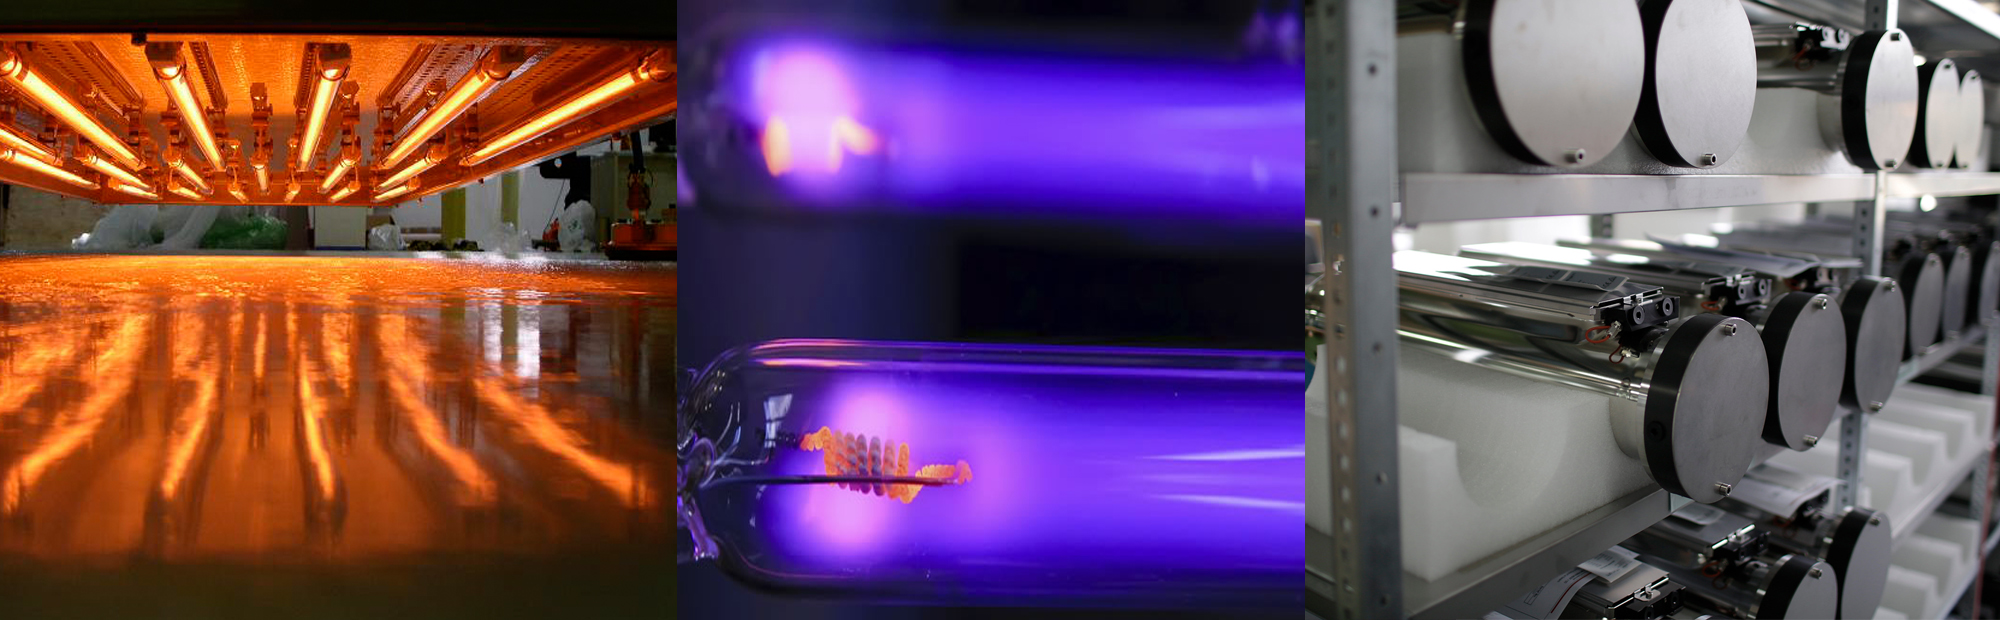 RADSYS, InfraRed, UltraViolet and Electron Beam